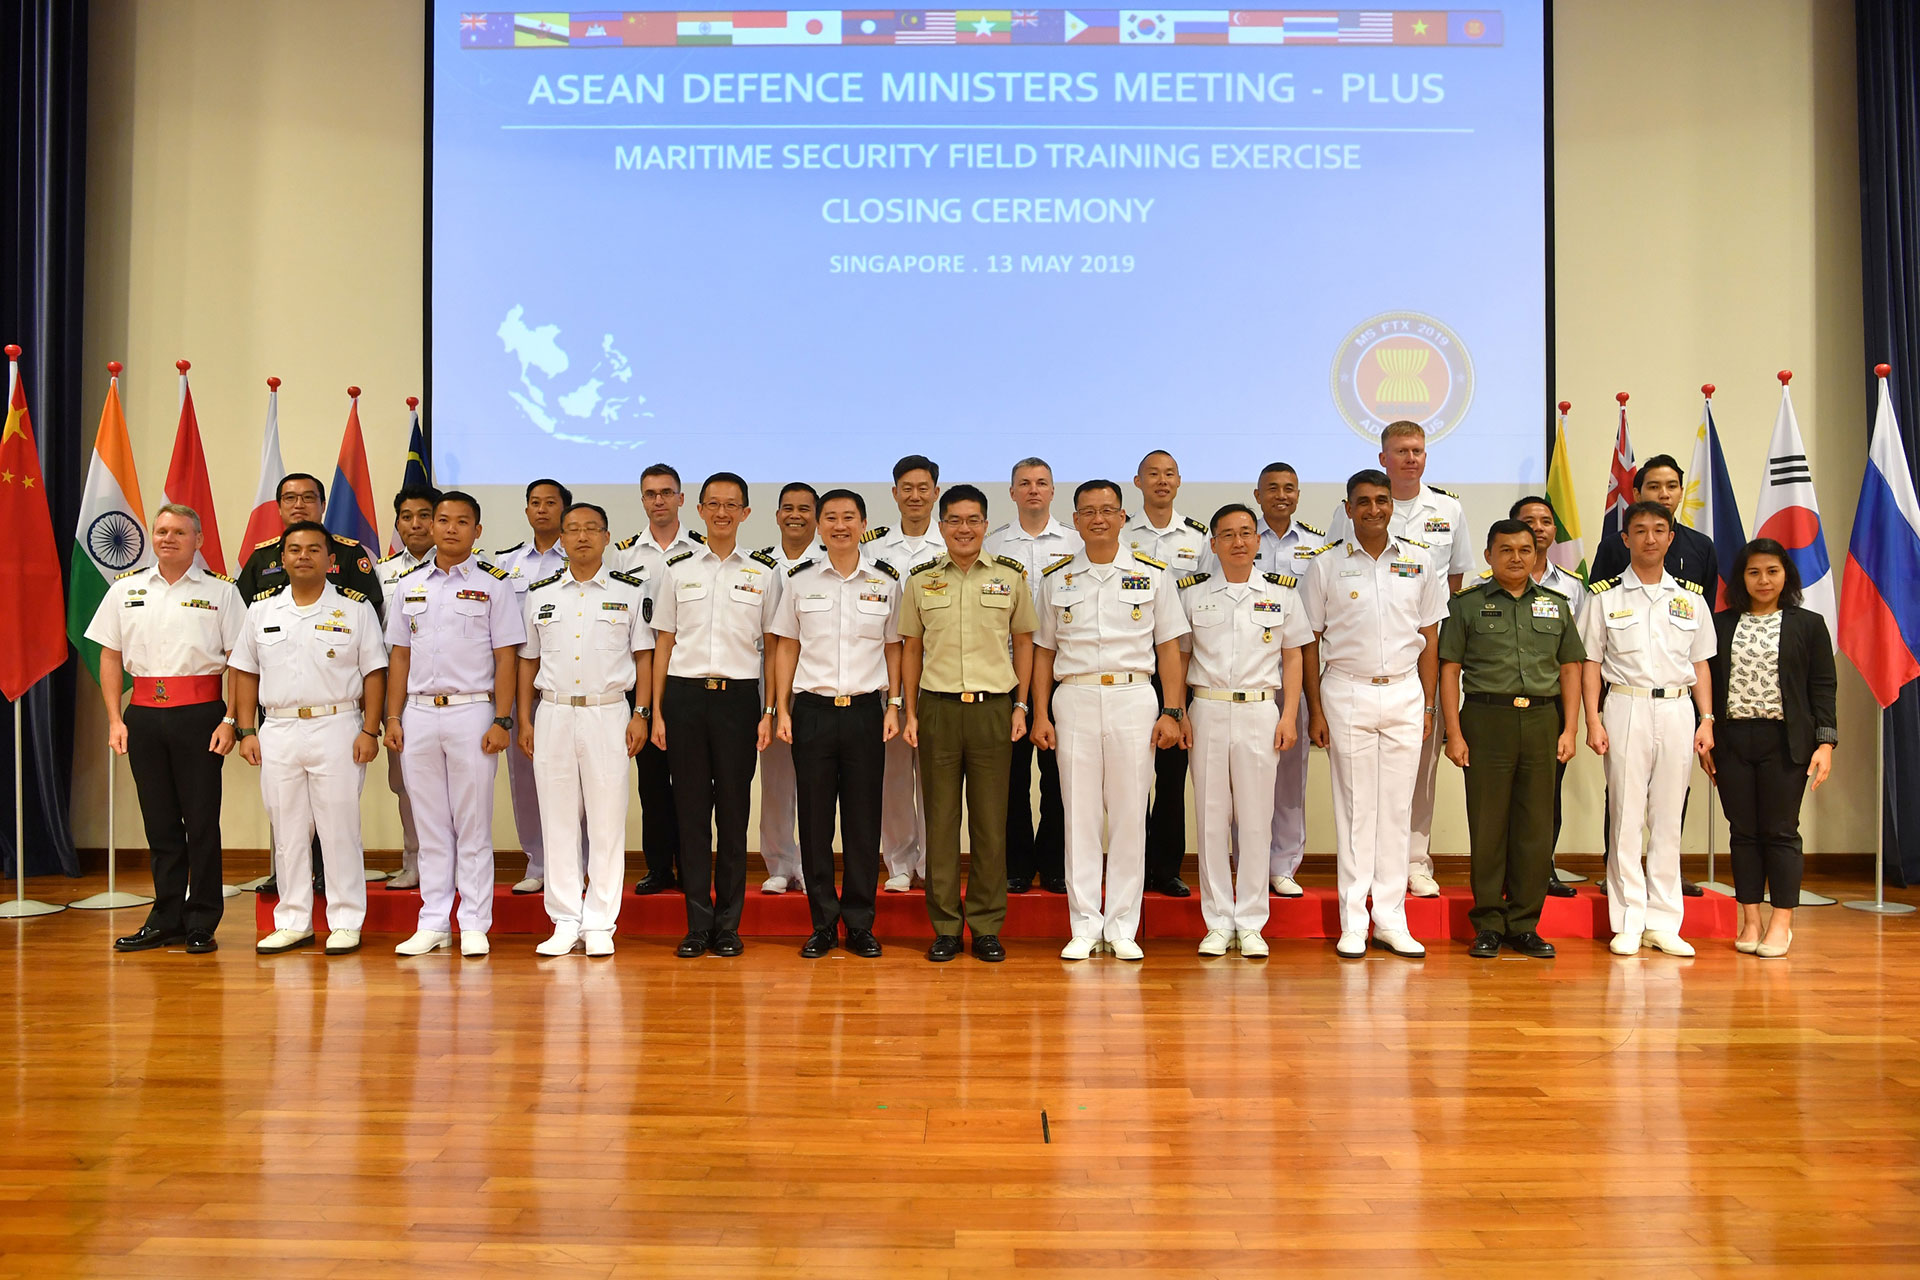 Singapore Chief of Defence Force Lieutenant-General Melvyn Ong (centre) with representatives from the ADMM-Plus navies.